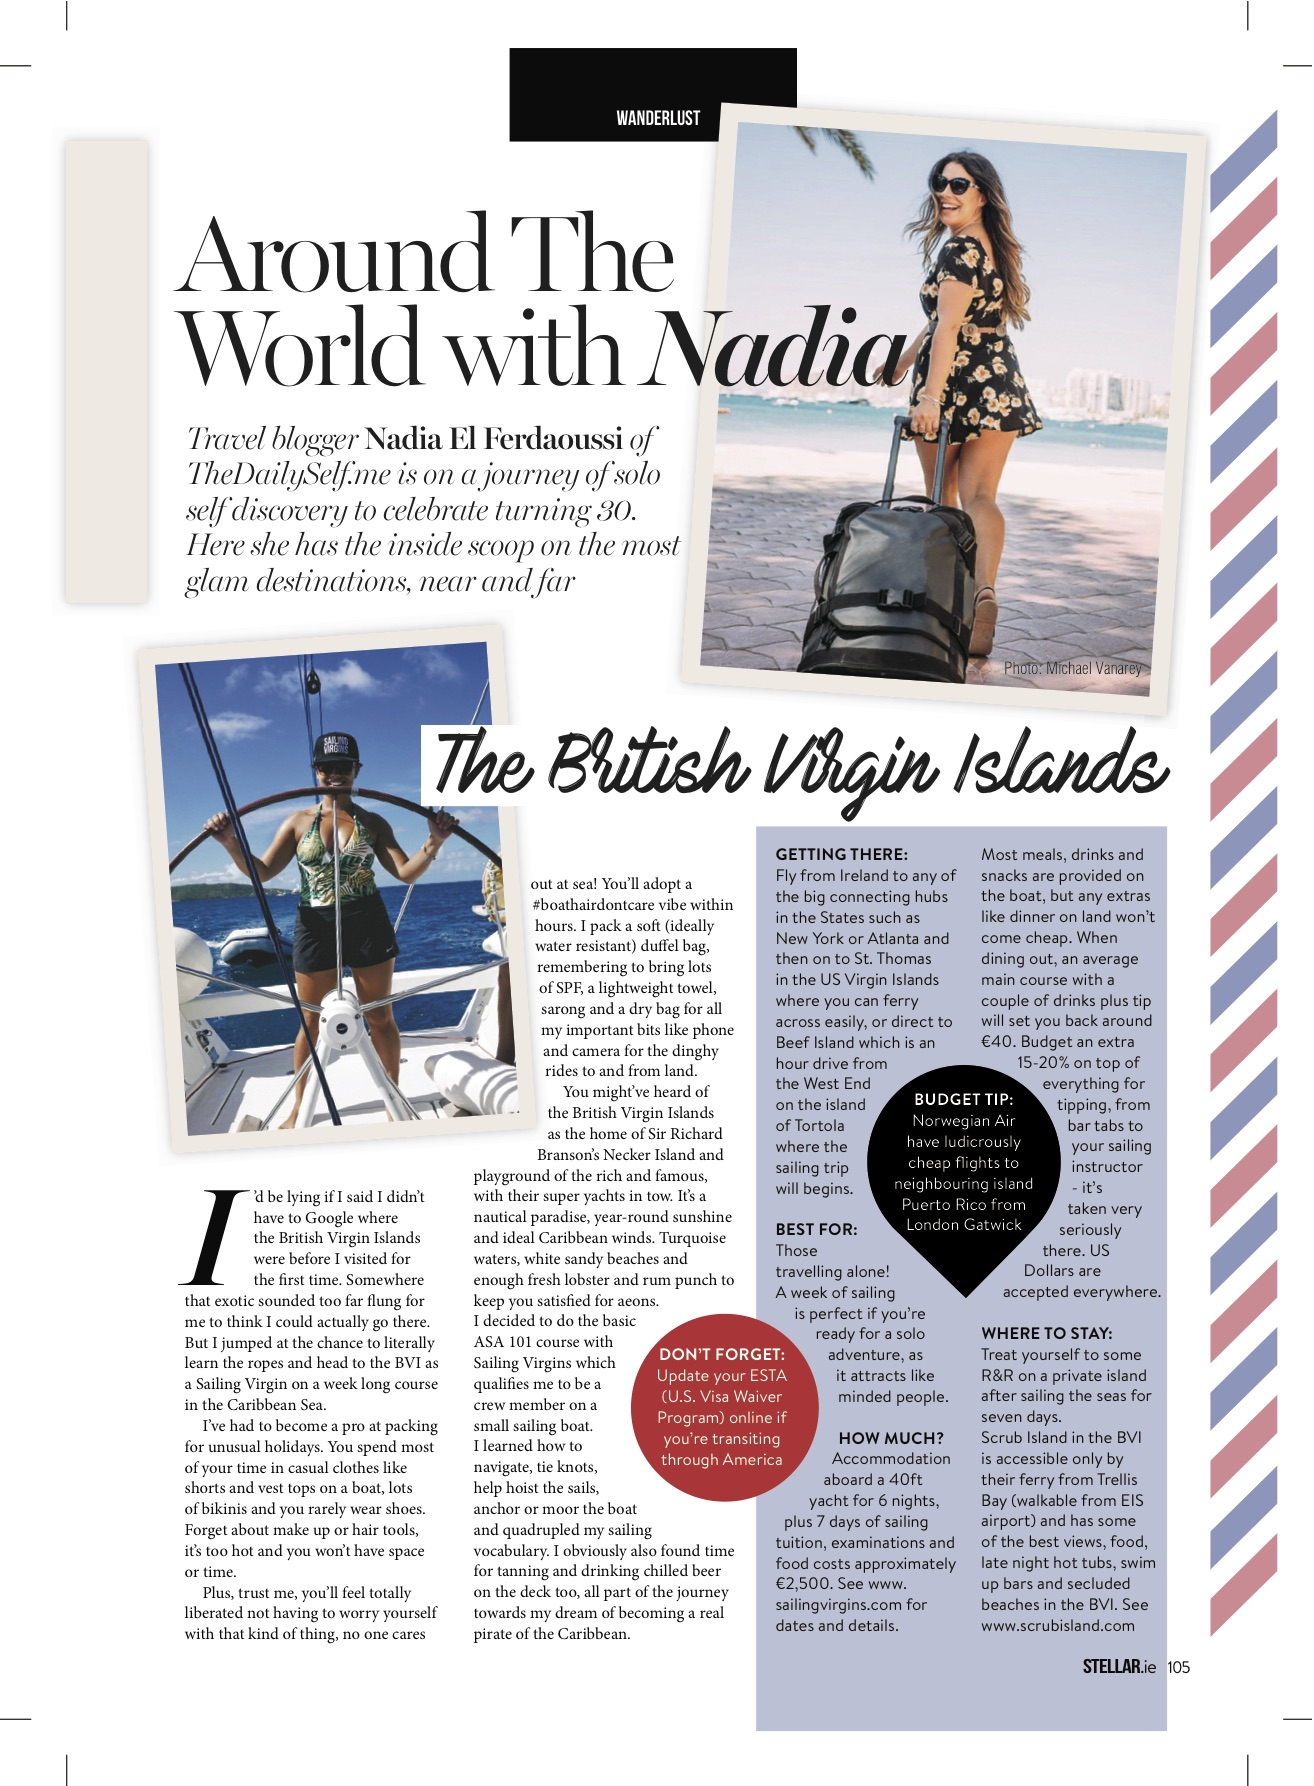 Nadia El Ferdaoussi Stellar Magazine British Virgin Islands BVI Sailing Virgins Travel Writer